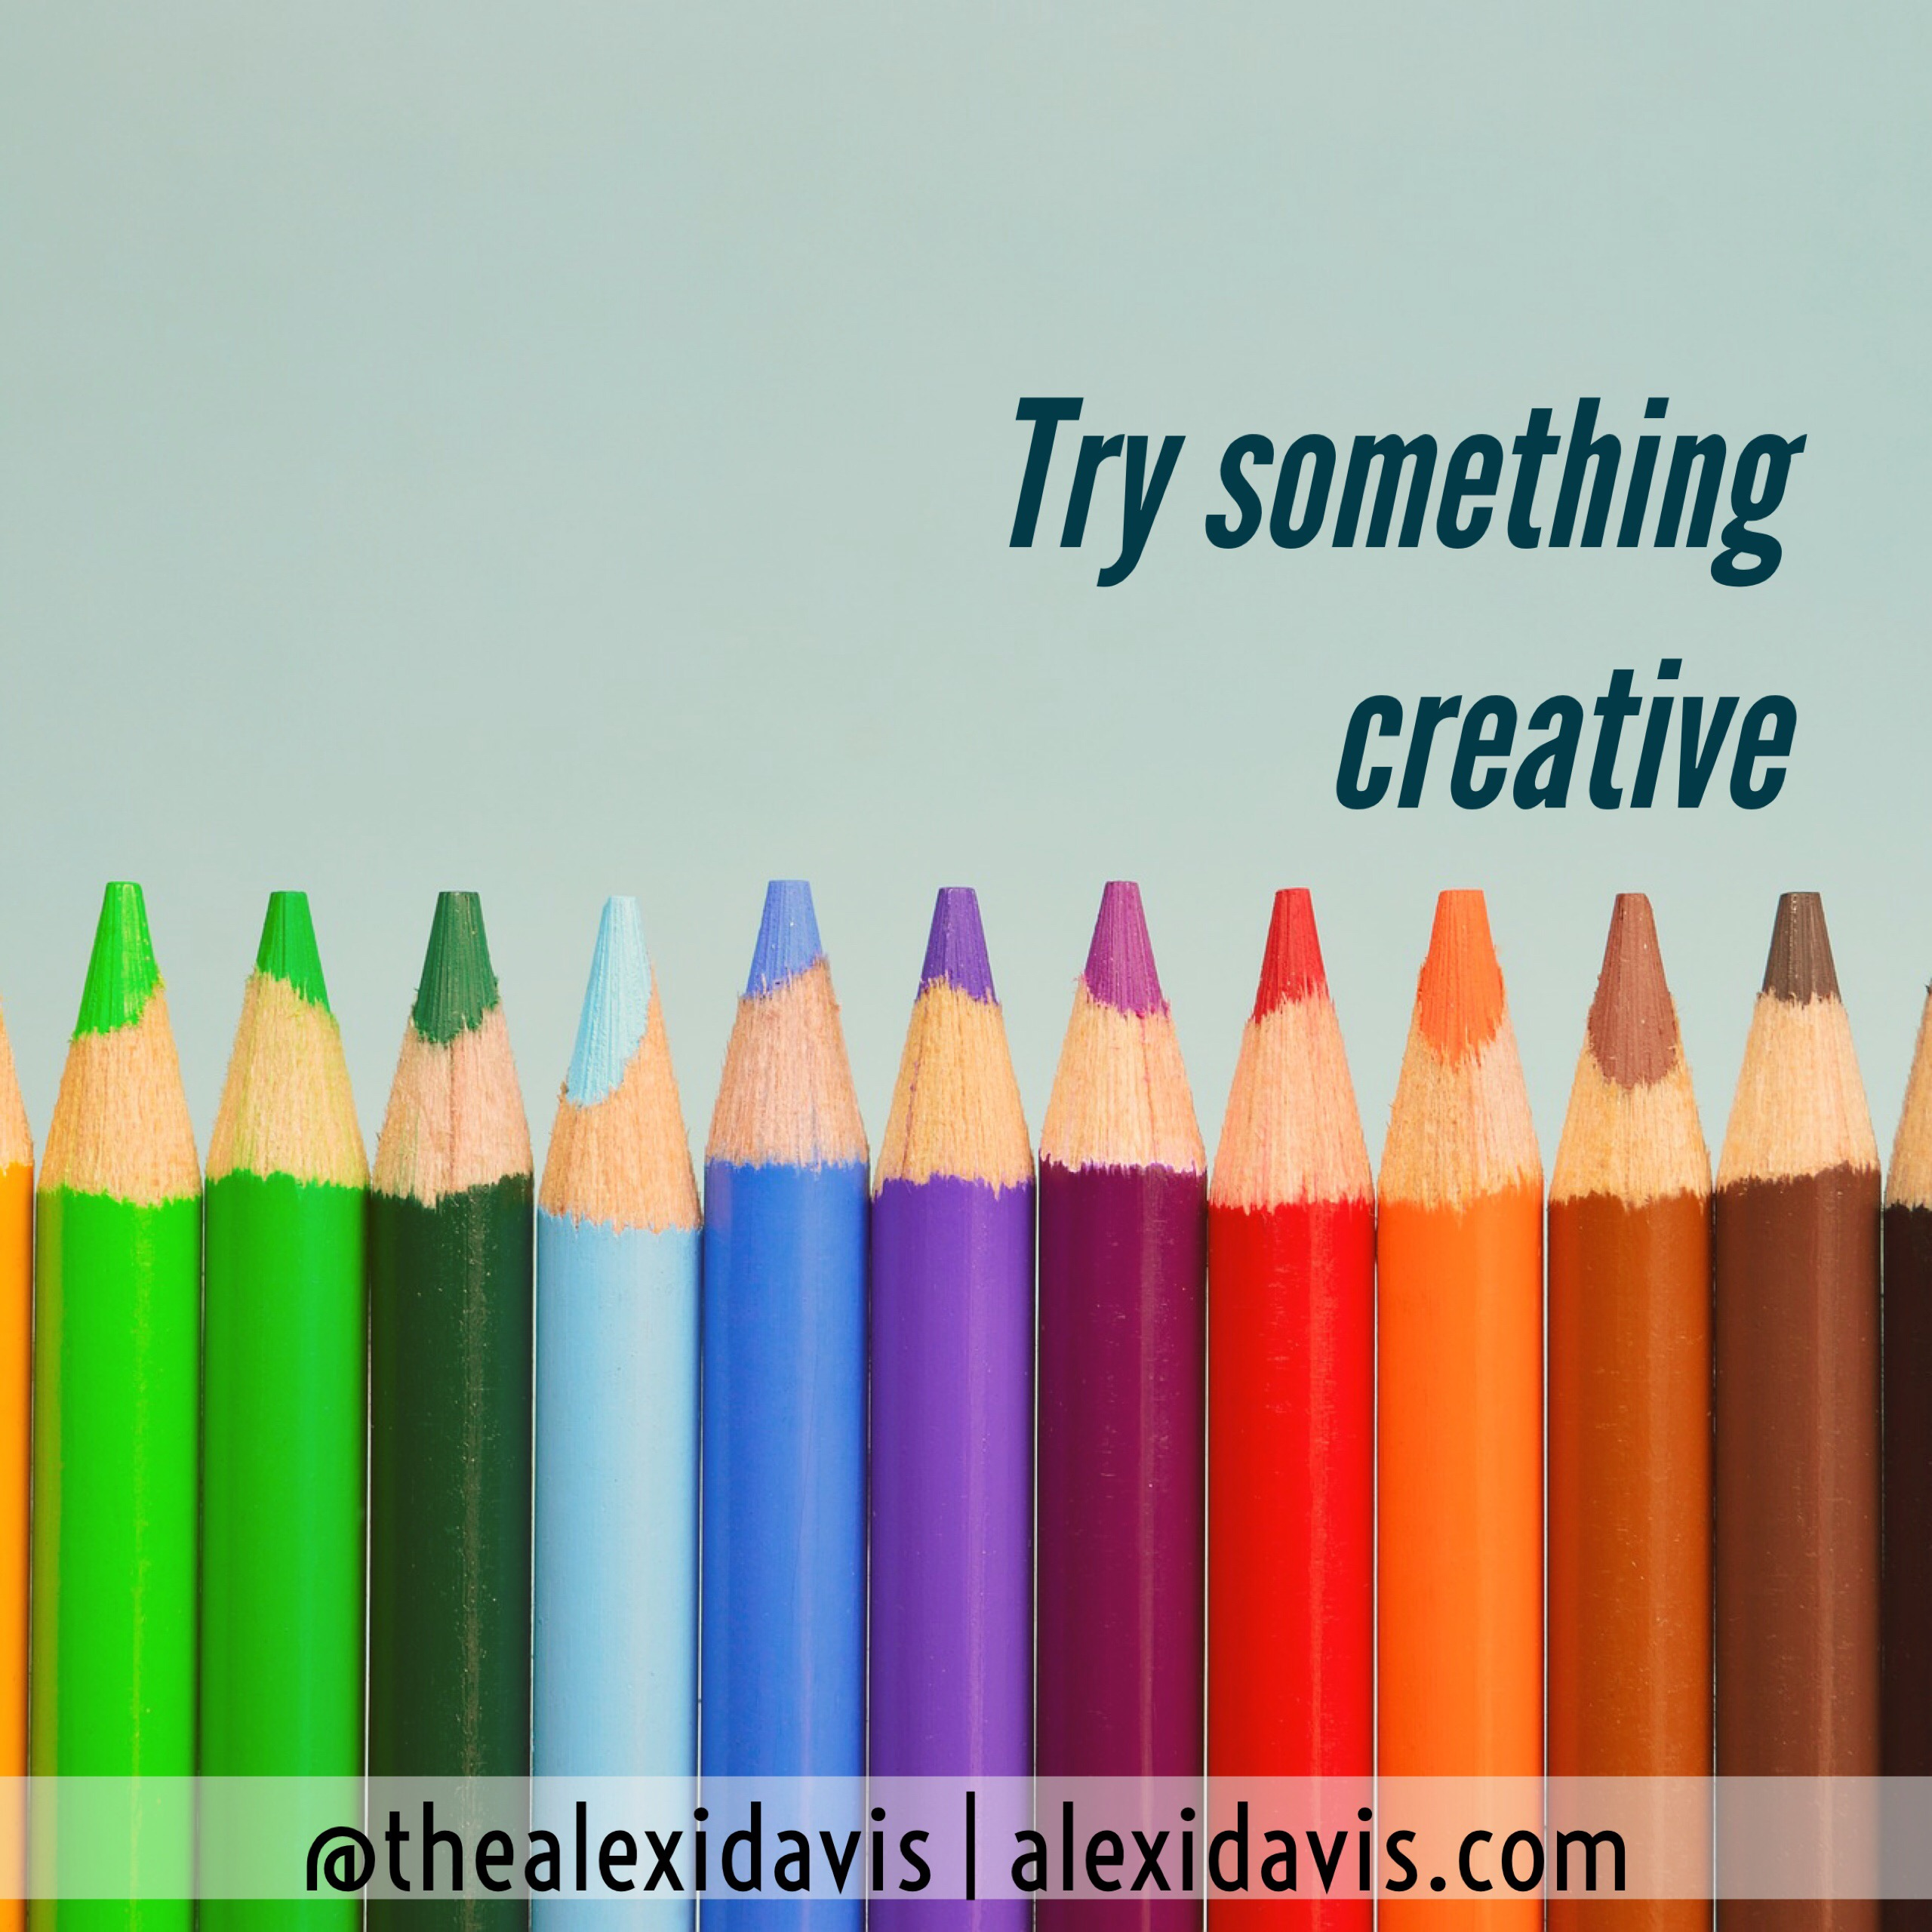 <p>Even if you&#8217;re not a writer or an artist, try to bring some creativity into your life today.</p>